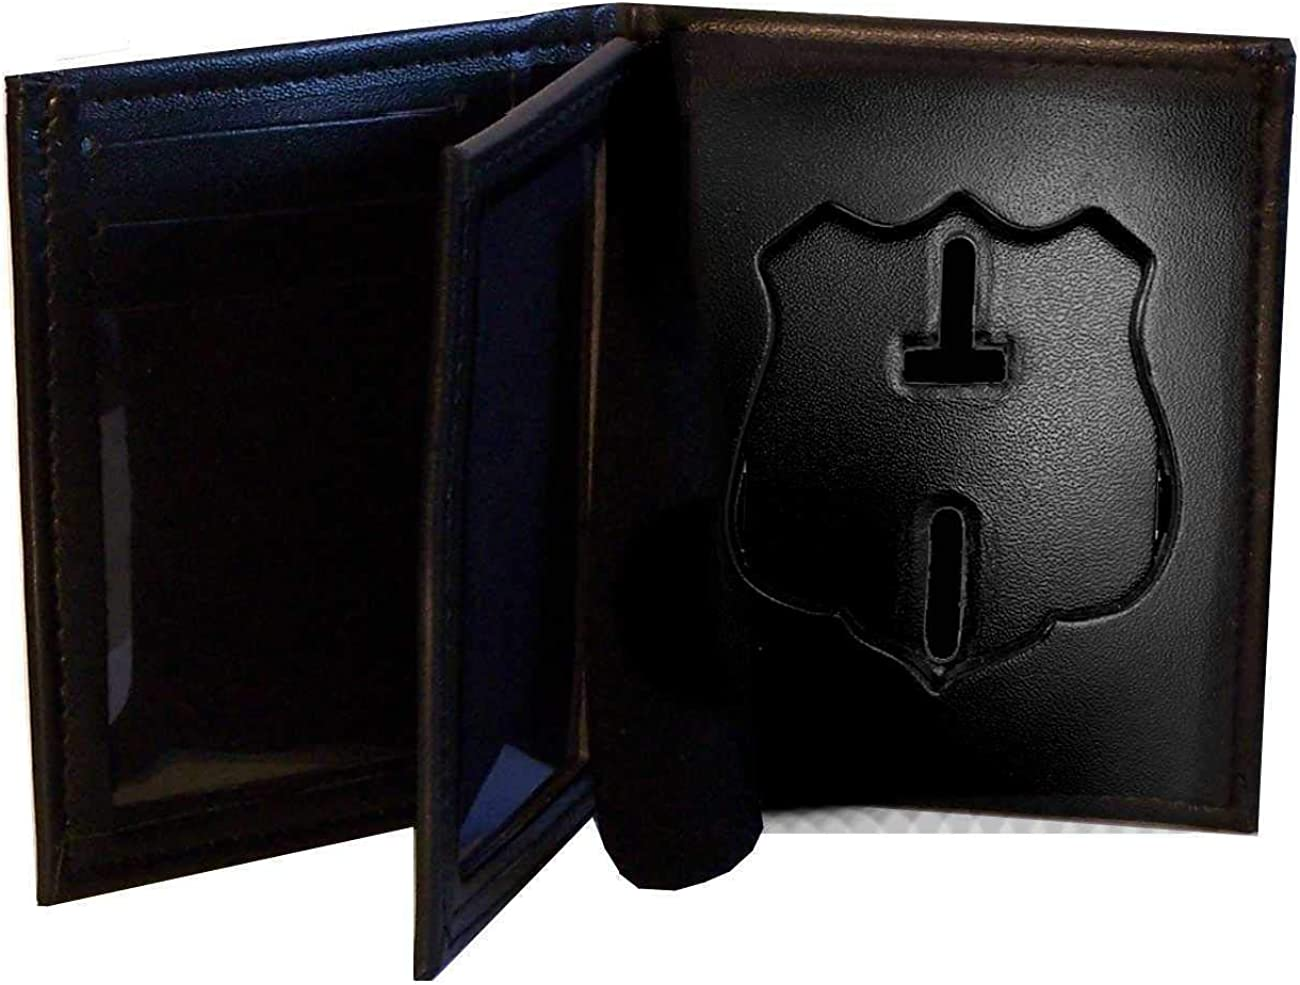 Houston Police Hidden Badge Wallet (Cutout DK847, 2.73 inches tall)